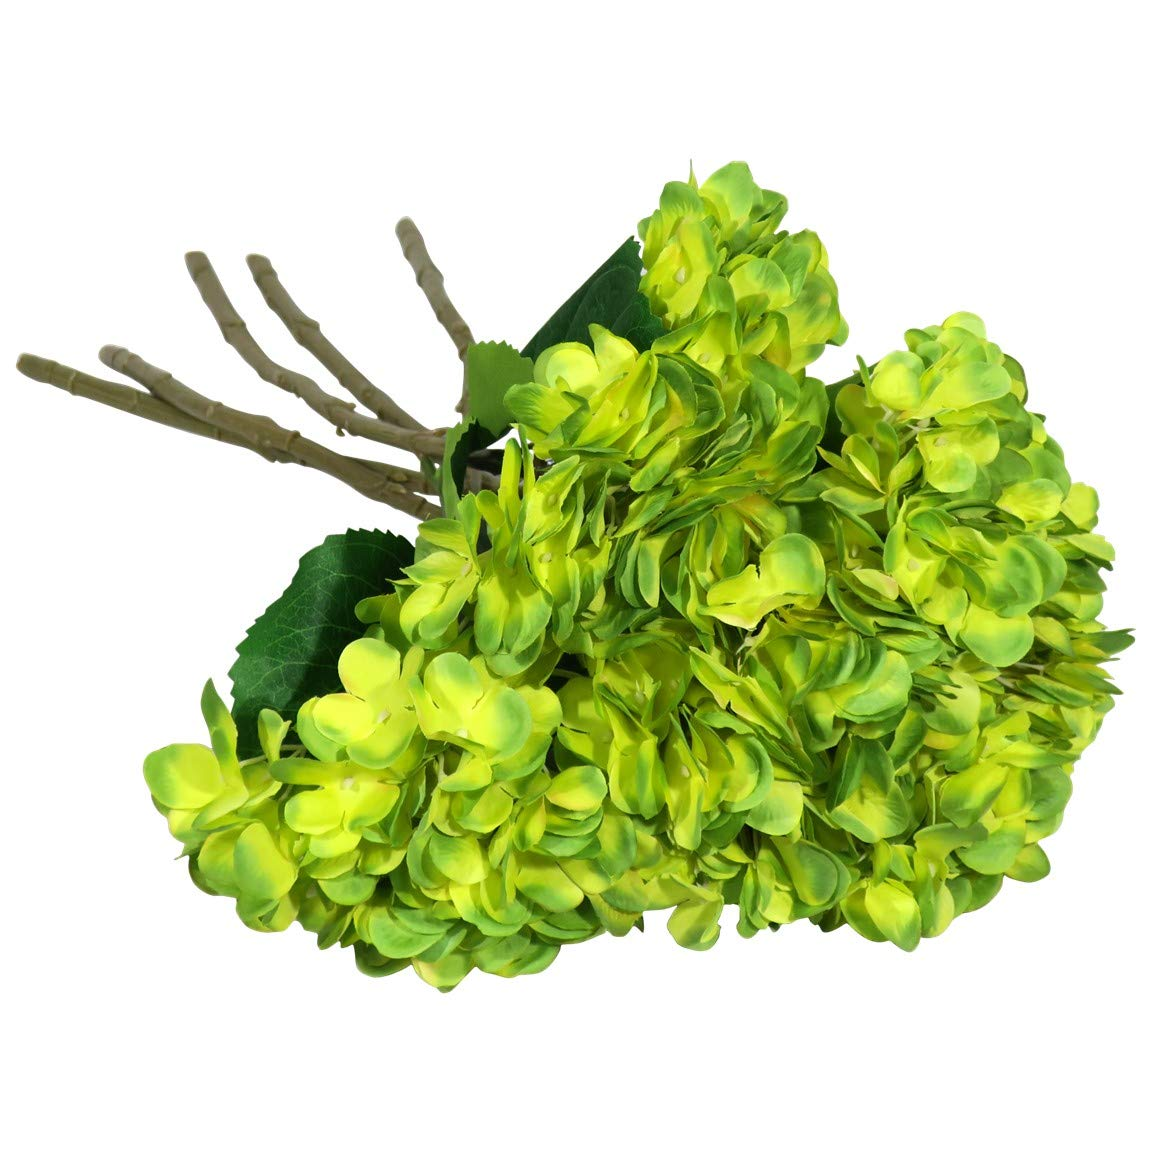 EZFLOWERY 5 Pcs Artificial Silk Hydrangeas Flowers Bouquet Arrangement, for Home Decor, Wedding, Office, Room, Hotel, Event, Party Decoration (Lime Green)